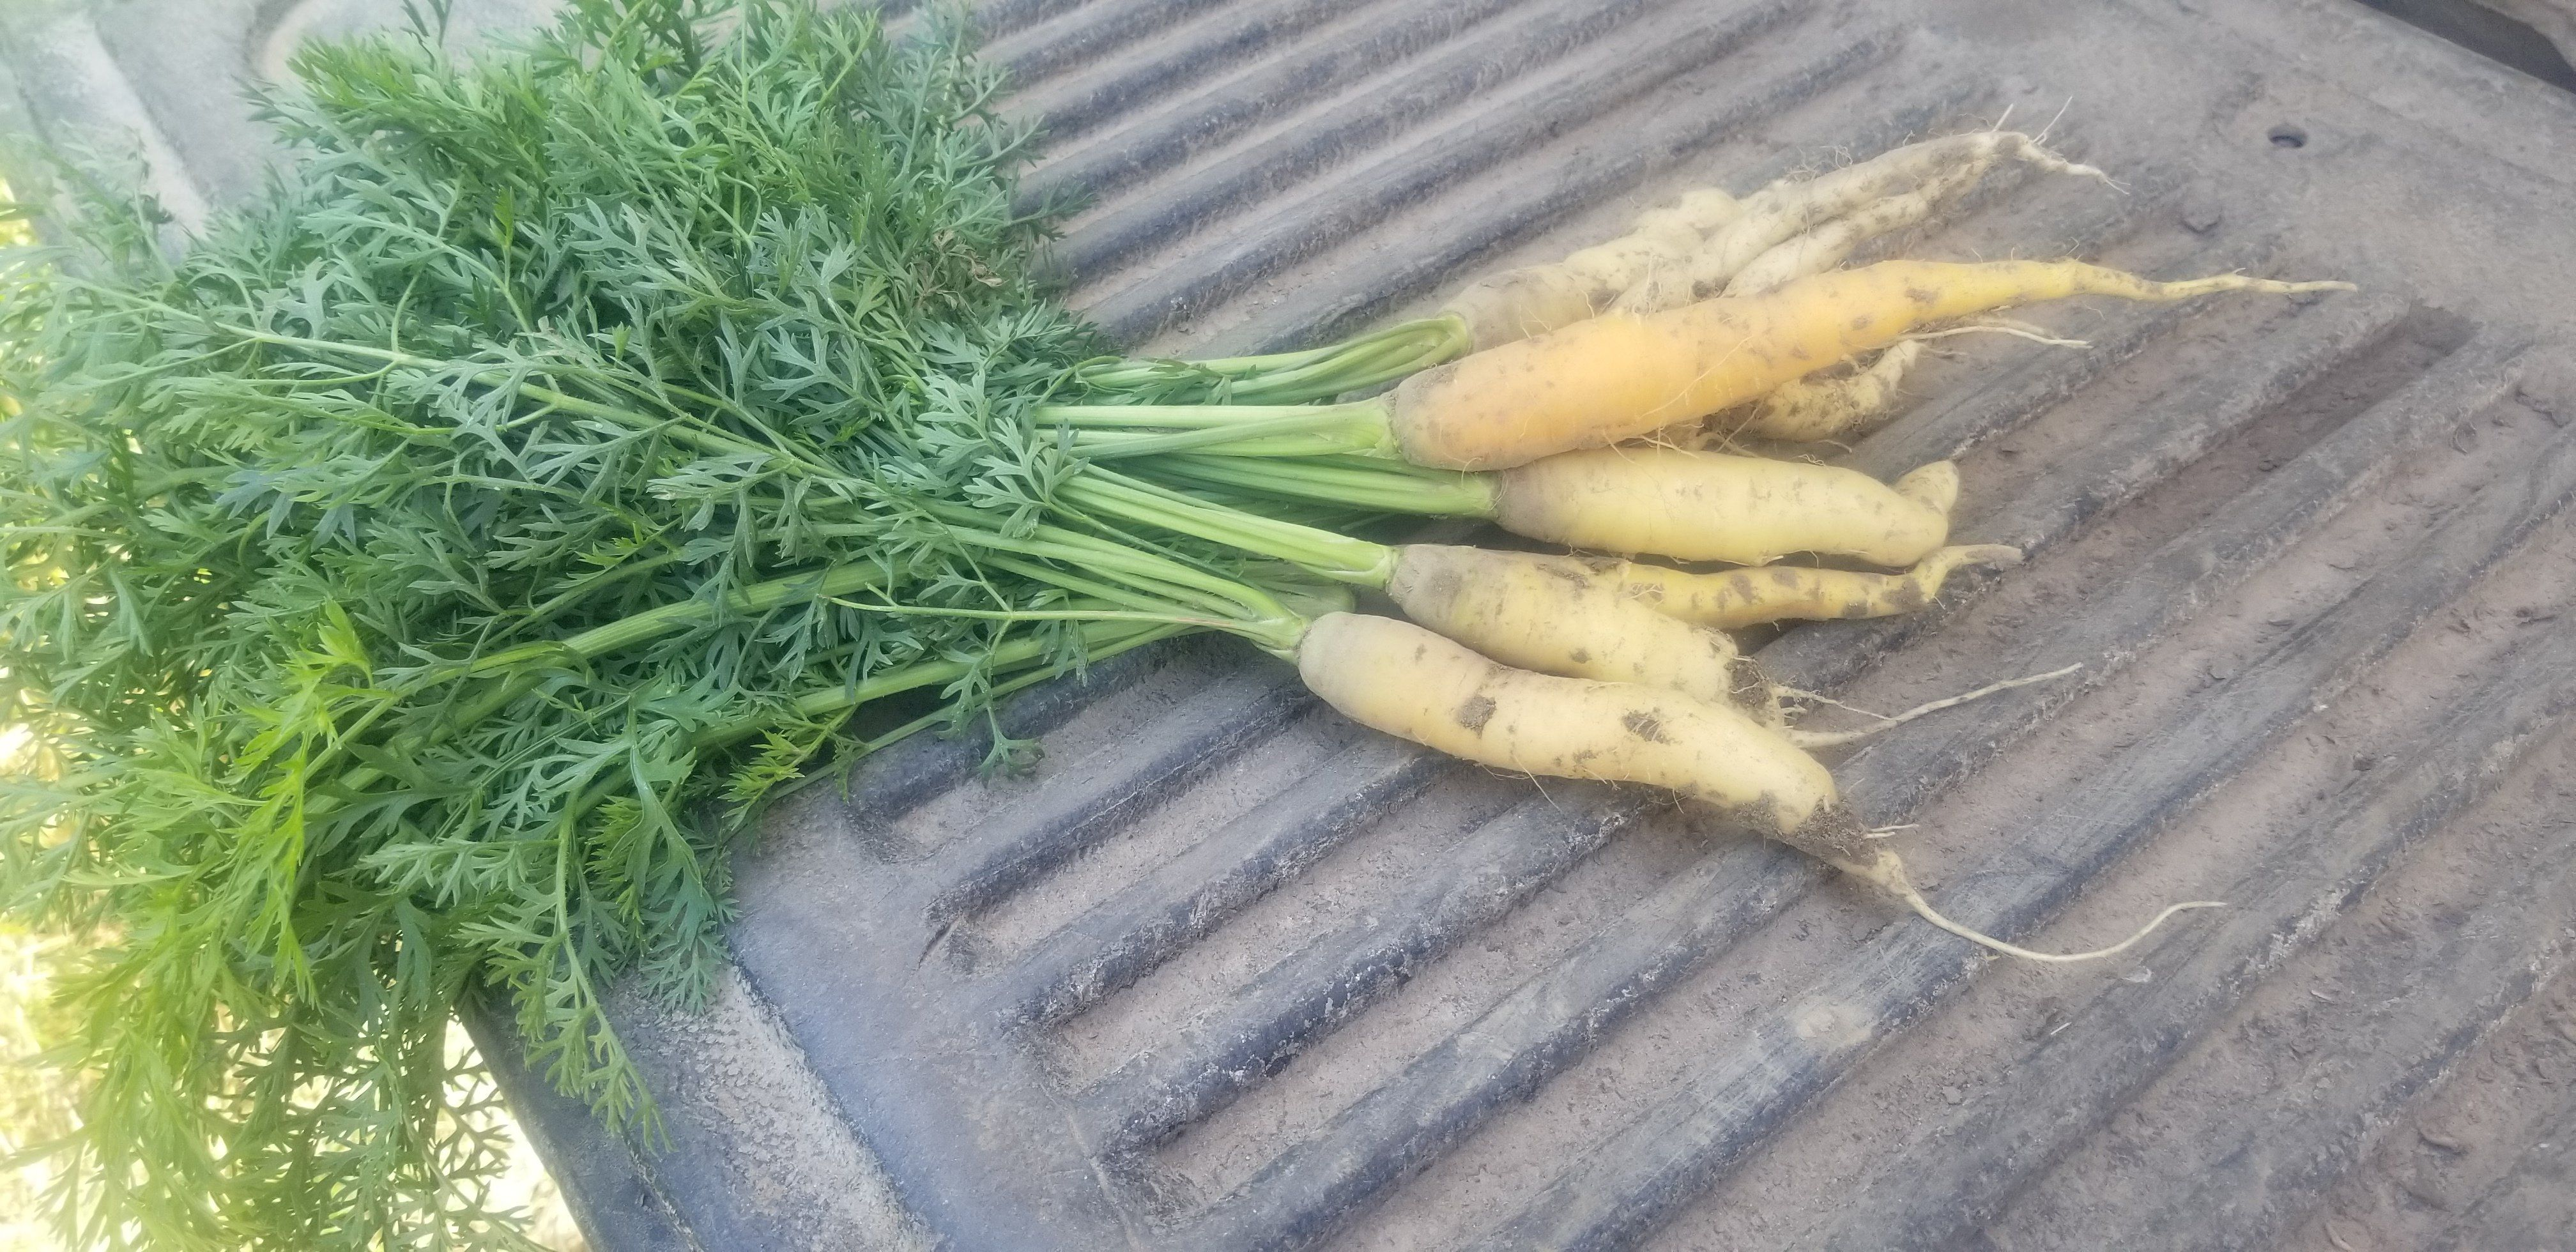 Farm Happenings for the week of August 8, 2020